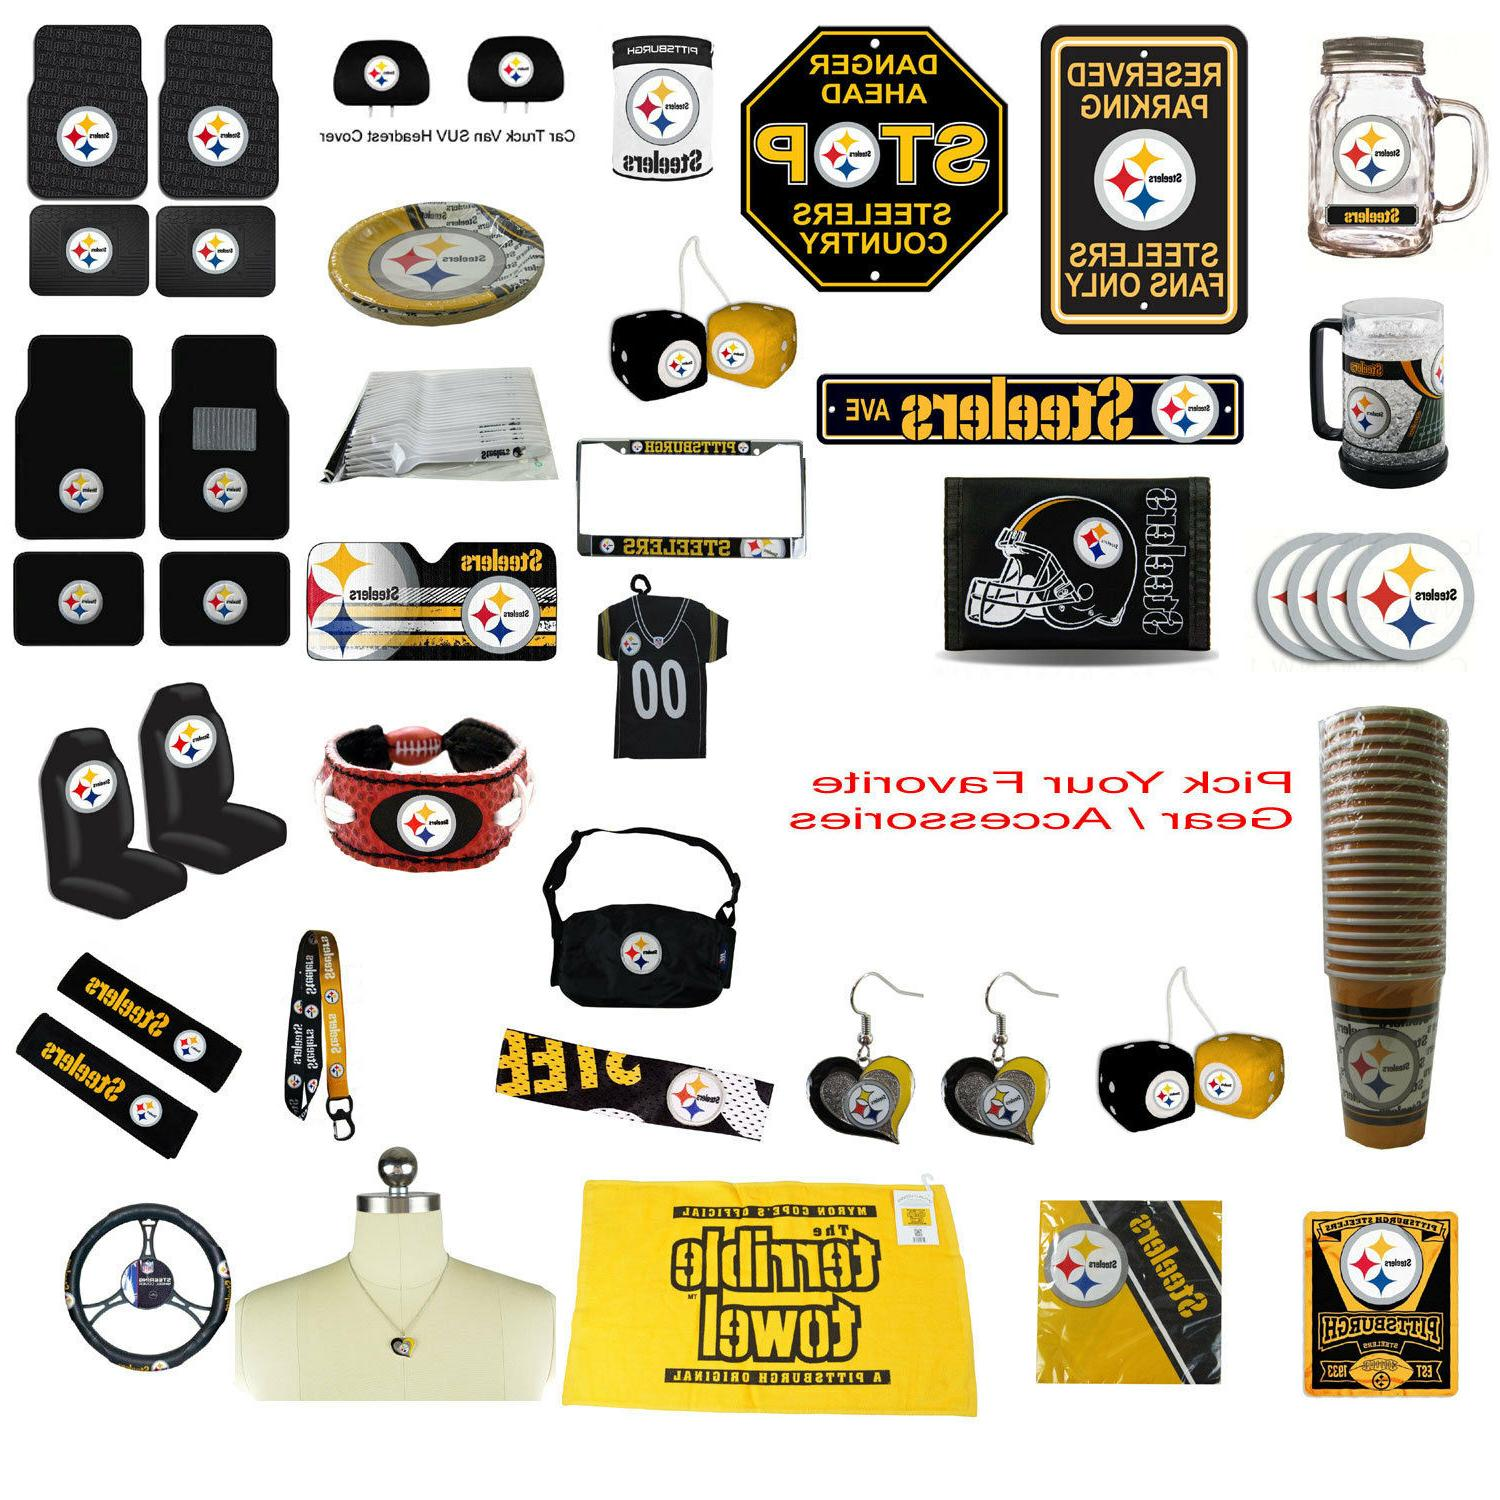 brand new nfl pittsburgh steelers pick your